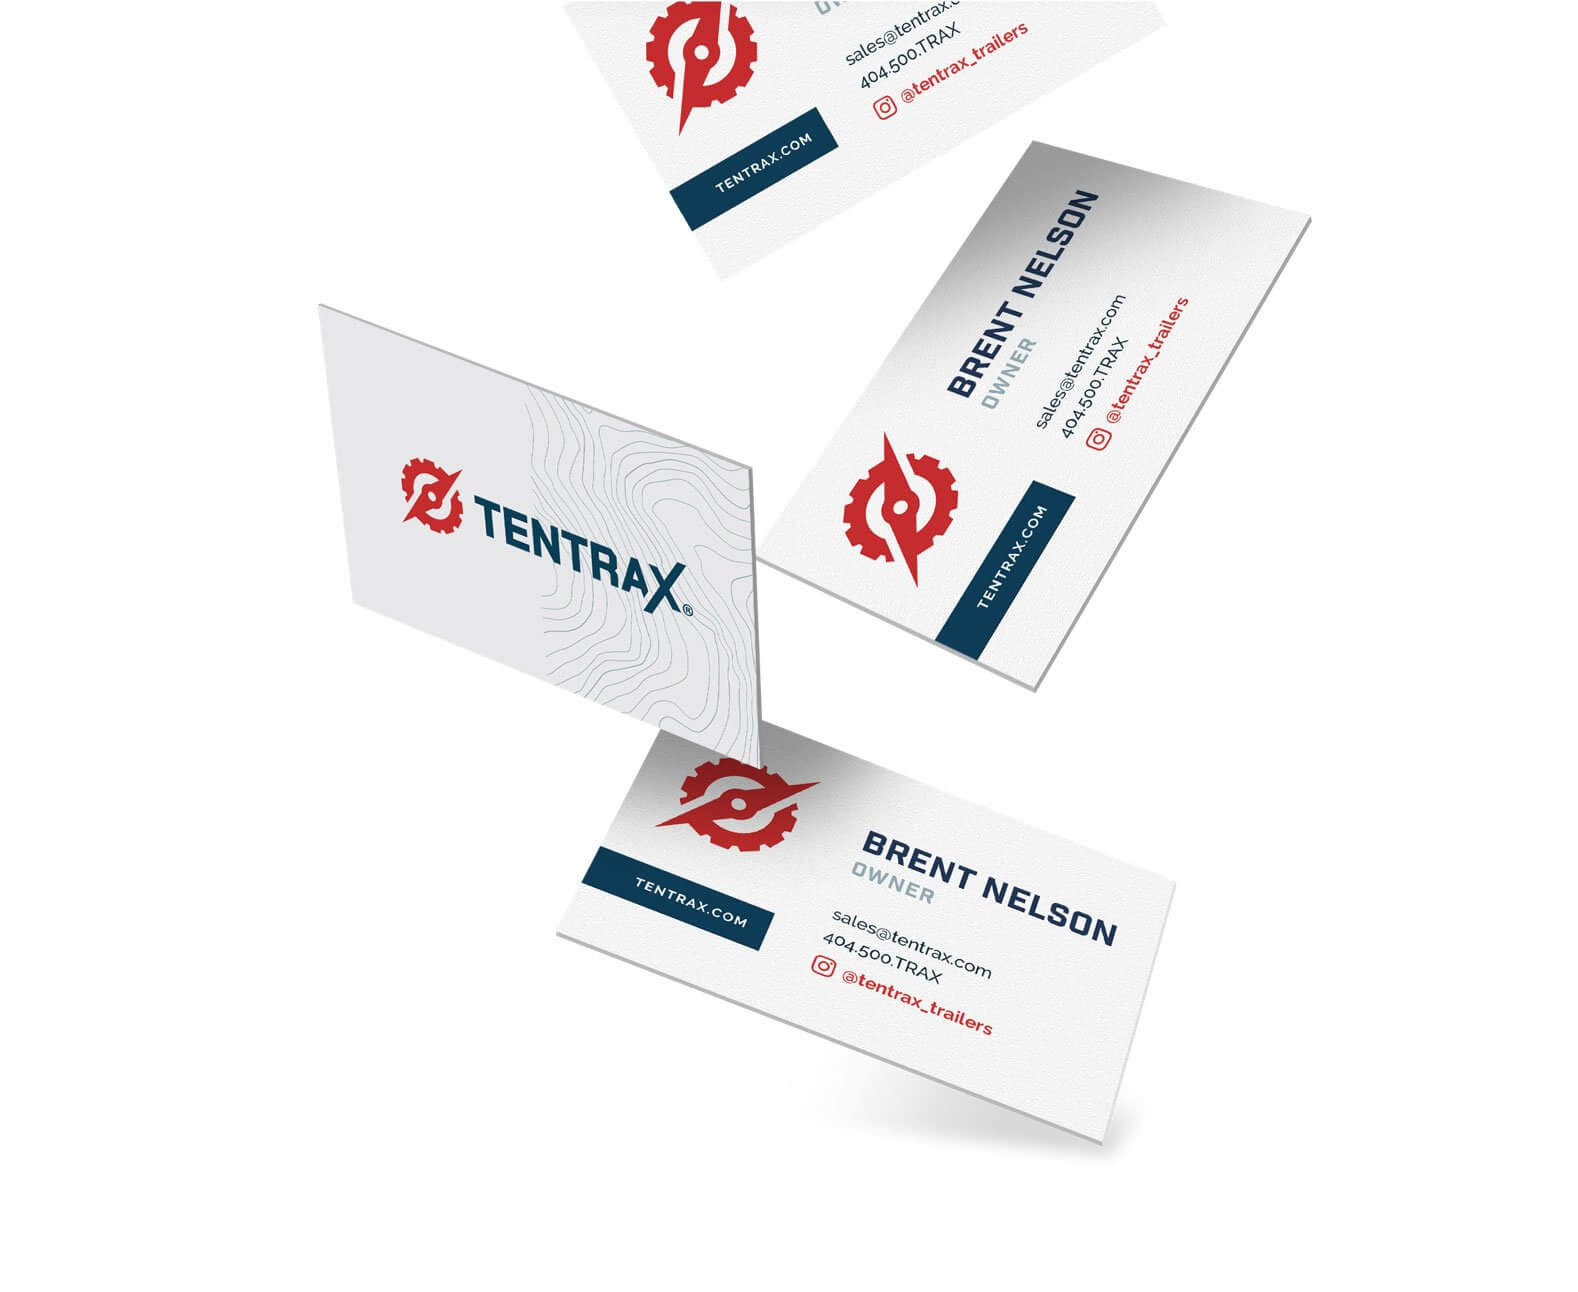 Tentrax business card design